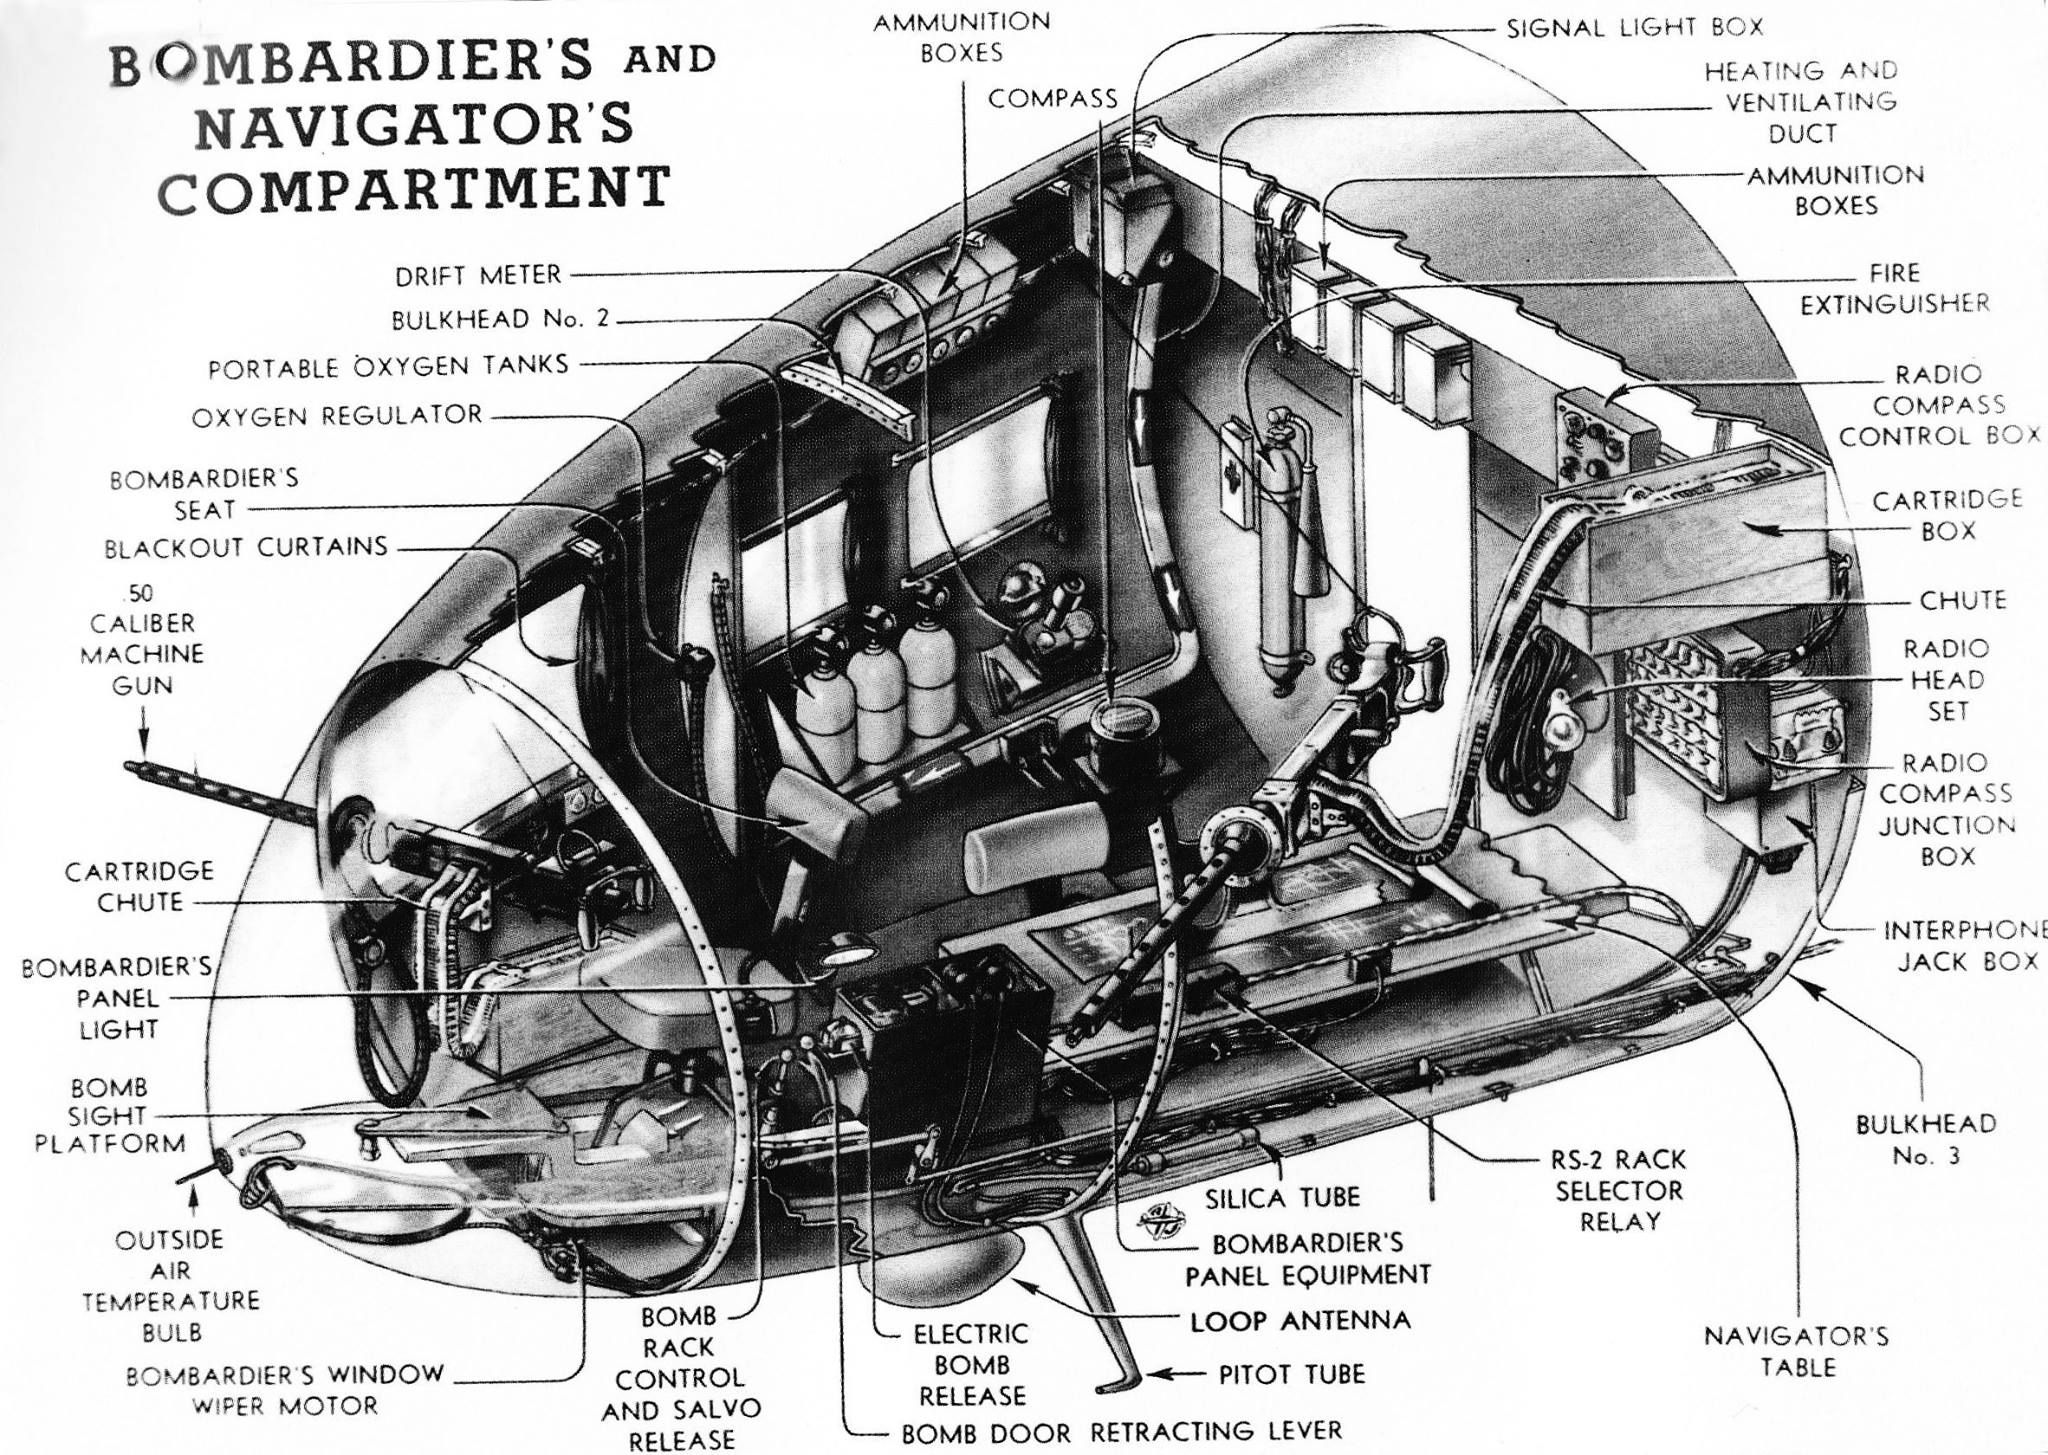 medium resolution of b 17 engine diagram wiring diagram schema b 17 engine diagram